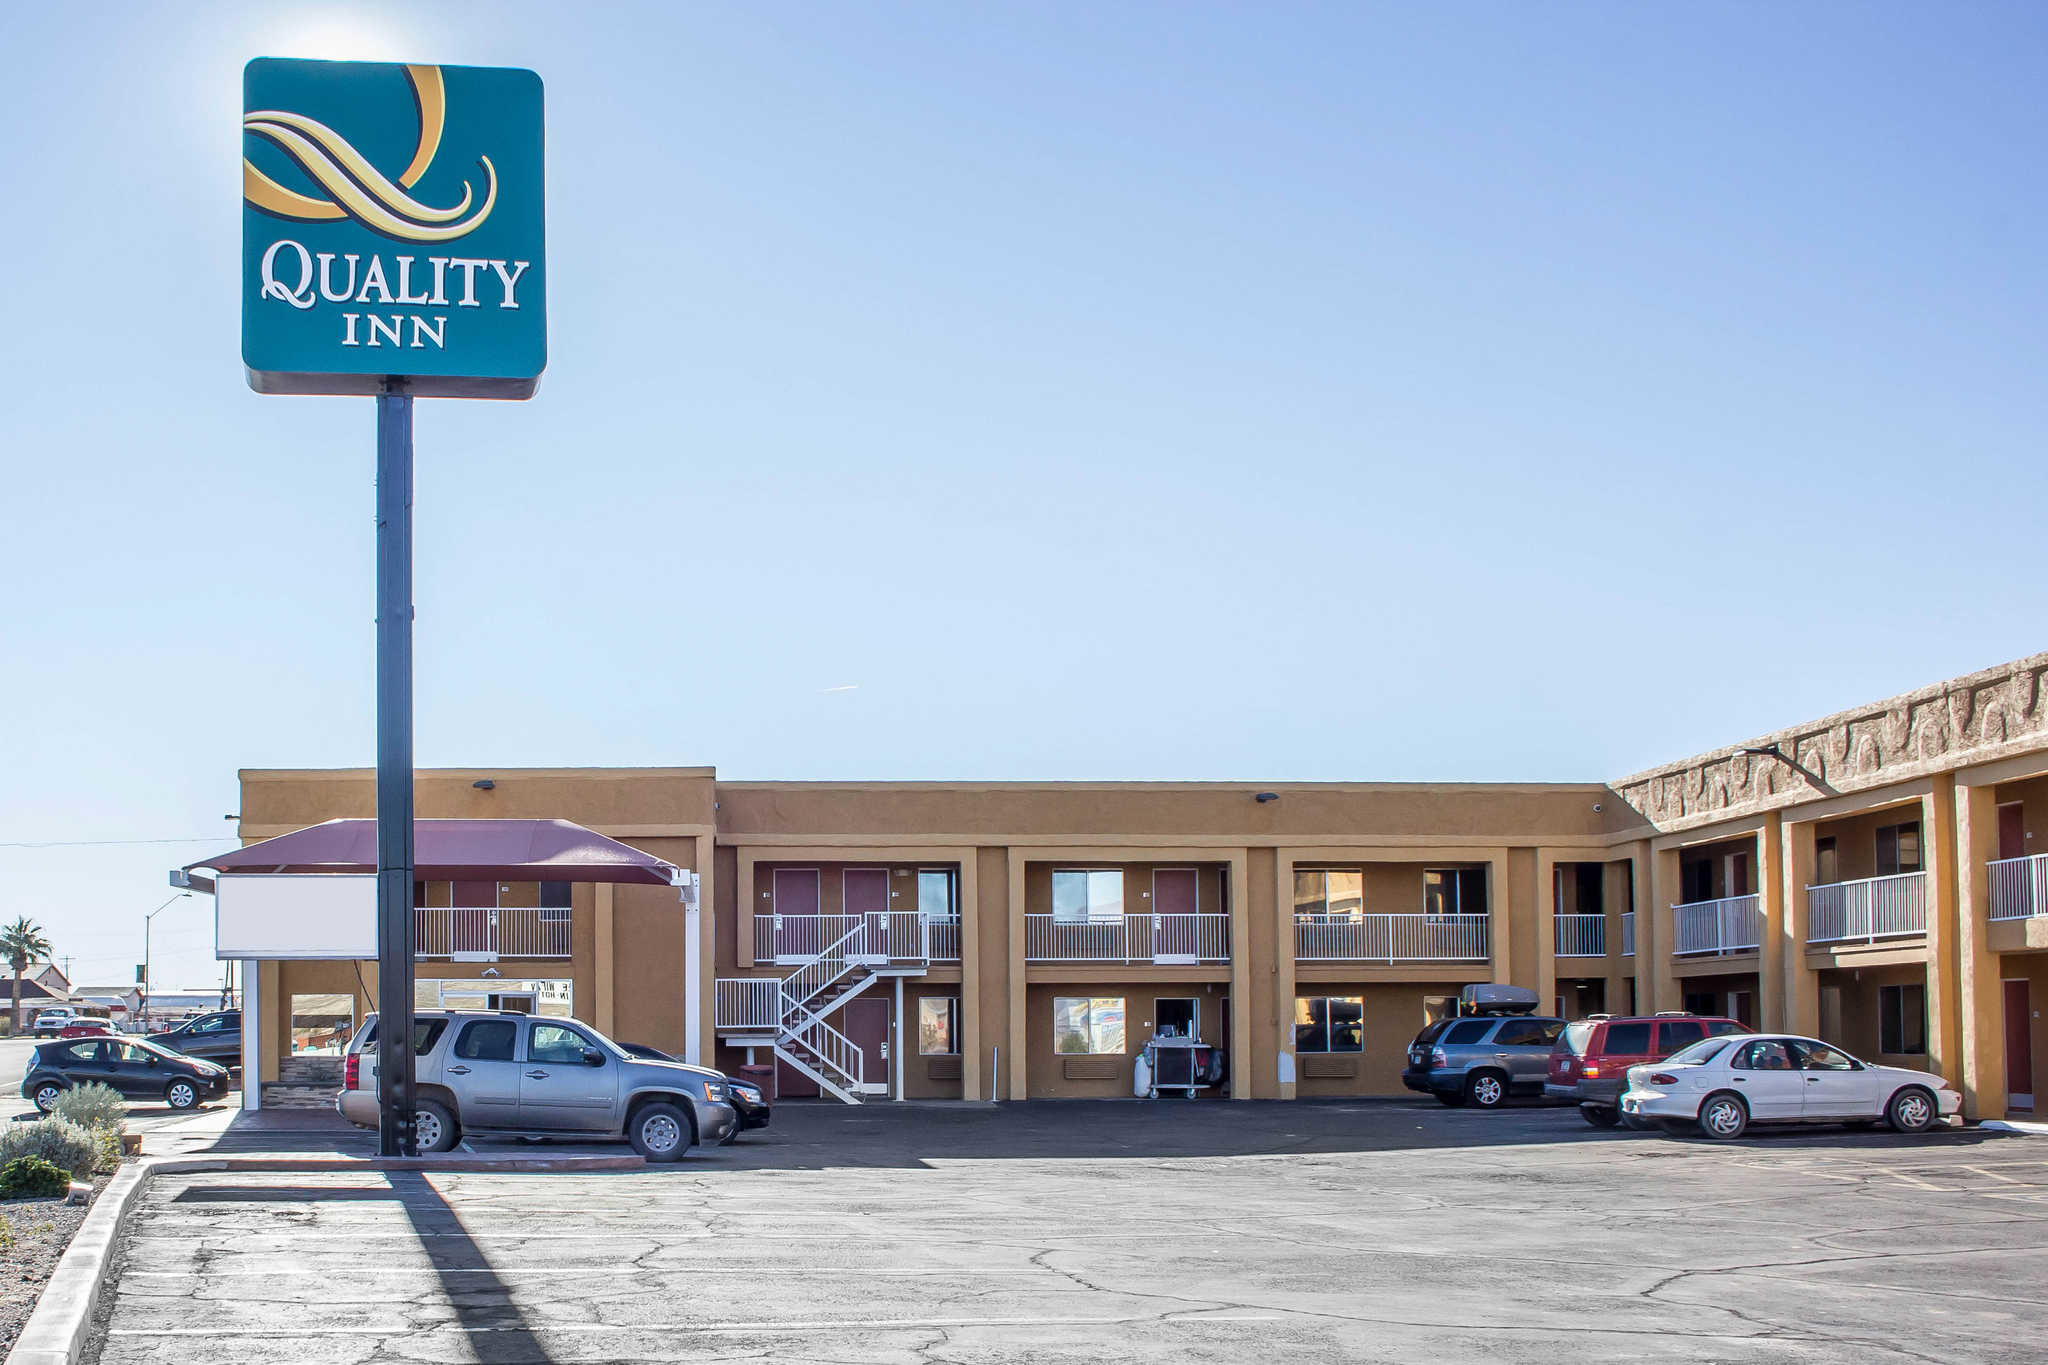 Choose Quality Inn hotels by Choice Hotels for value and exceptional amenities to.